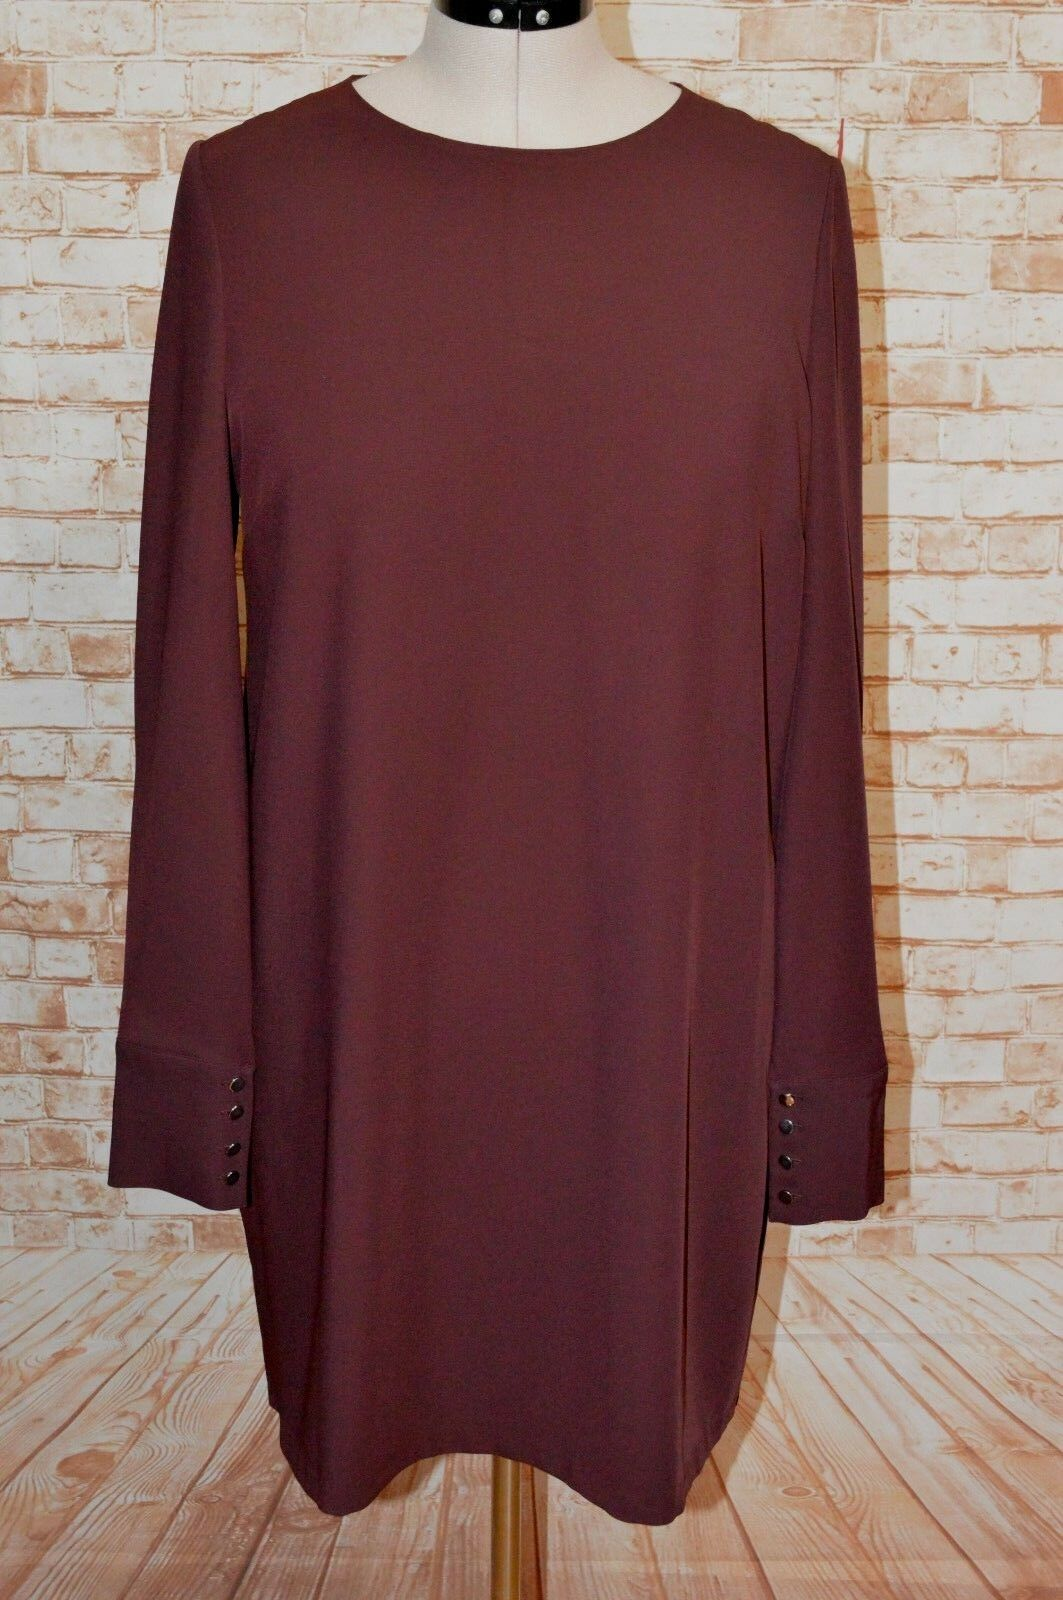 A723 WITCHERY BERRY RED SHIFT DRESS SIZE 14 W17 NEW